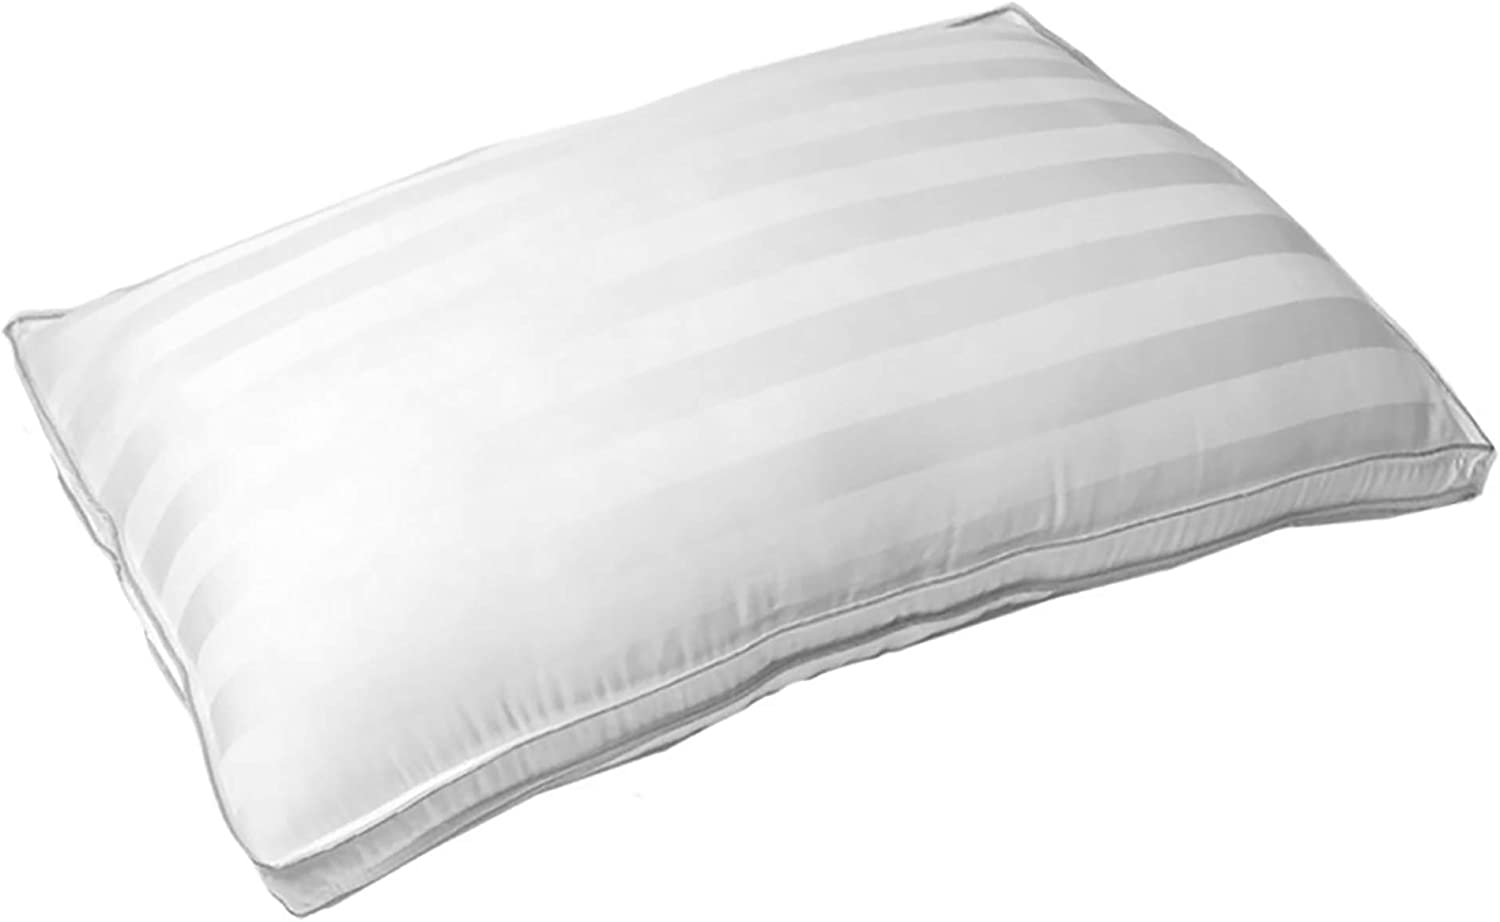 Cariloha Micro-Gel Pillow 100% Bamboo Cover - Micro-Gel Fibers to Prevent Pillow Clumping (King)